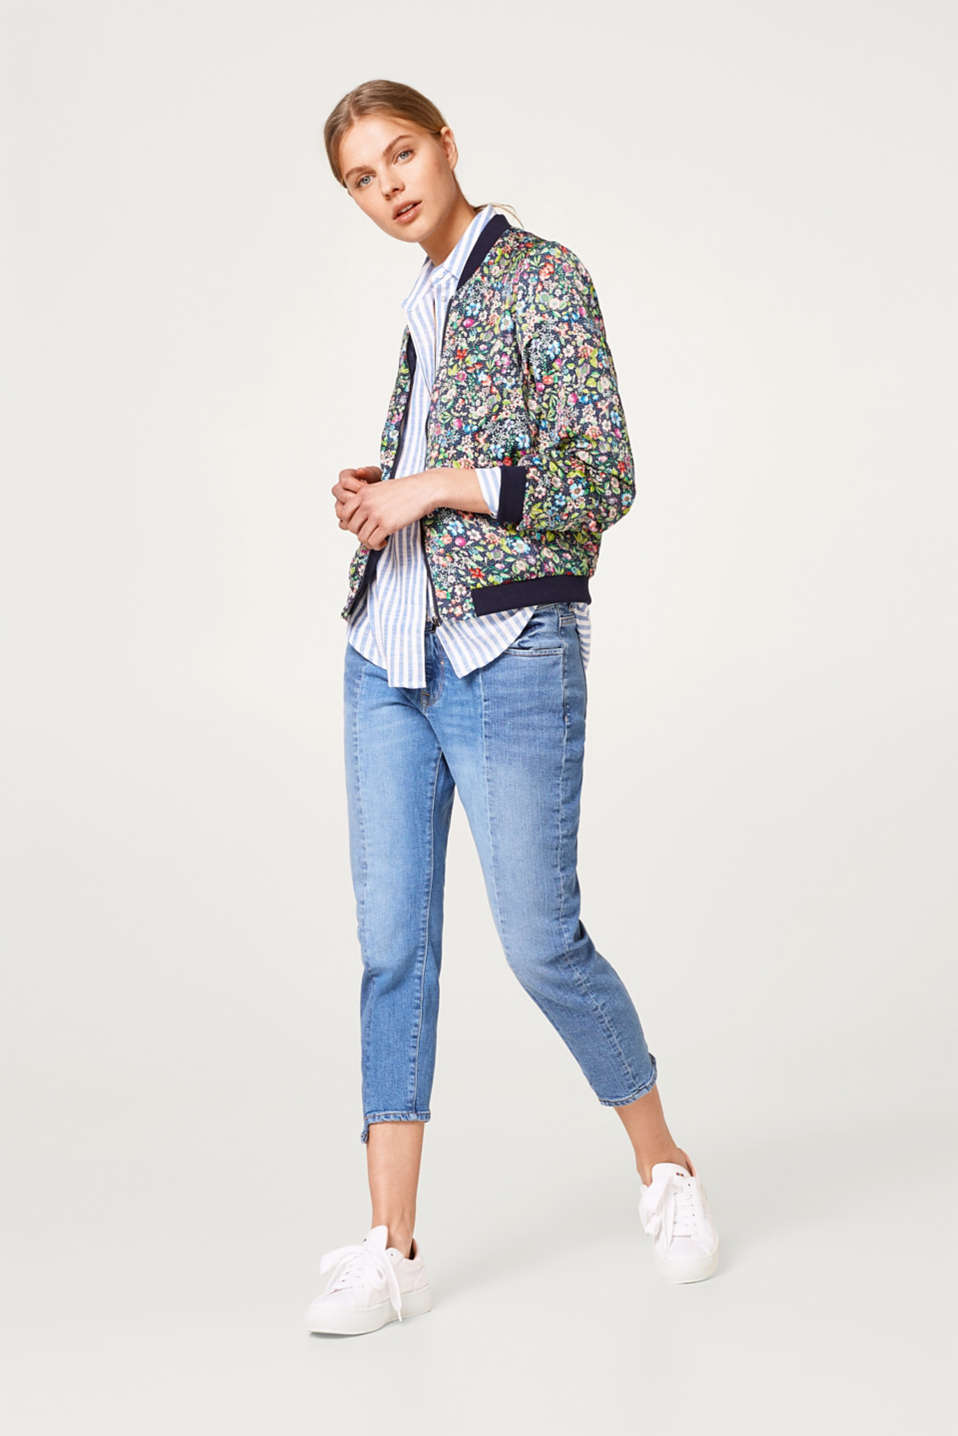 Lightweight bomber jacket with a colourful floral print